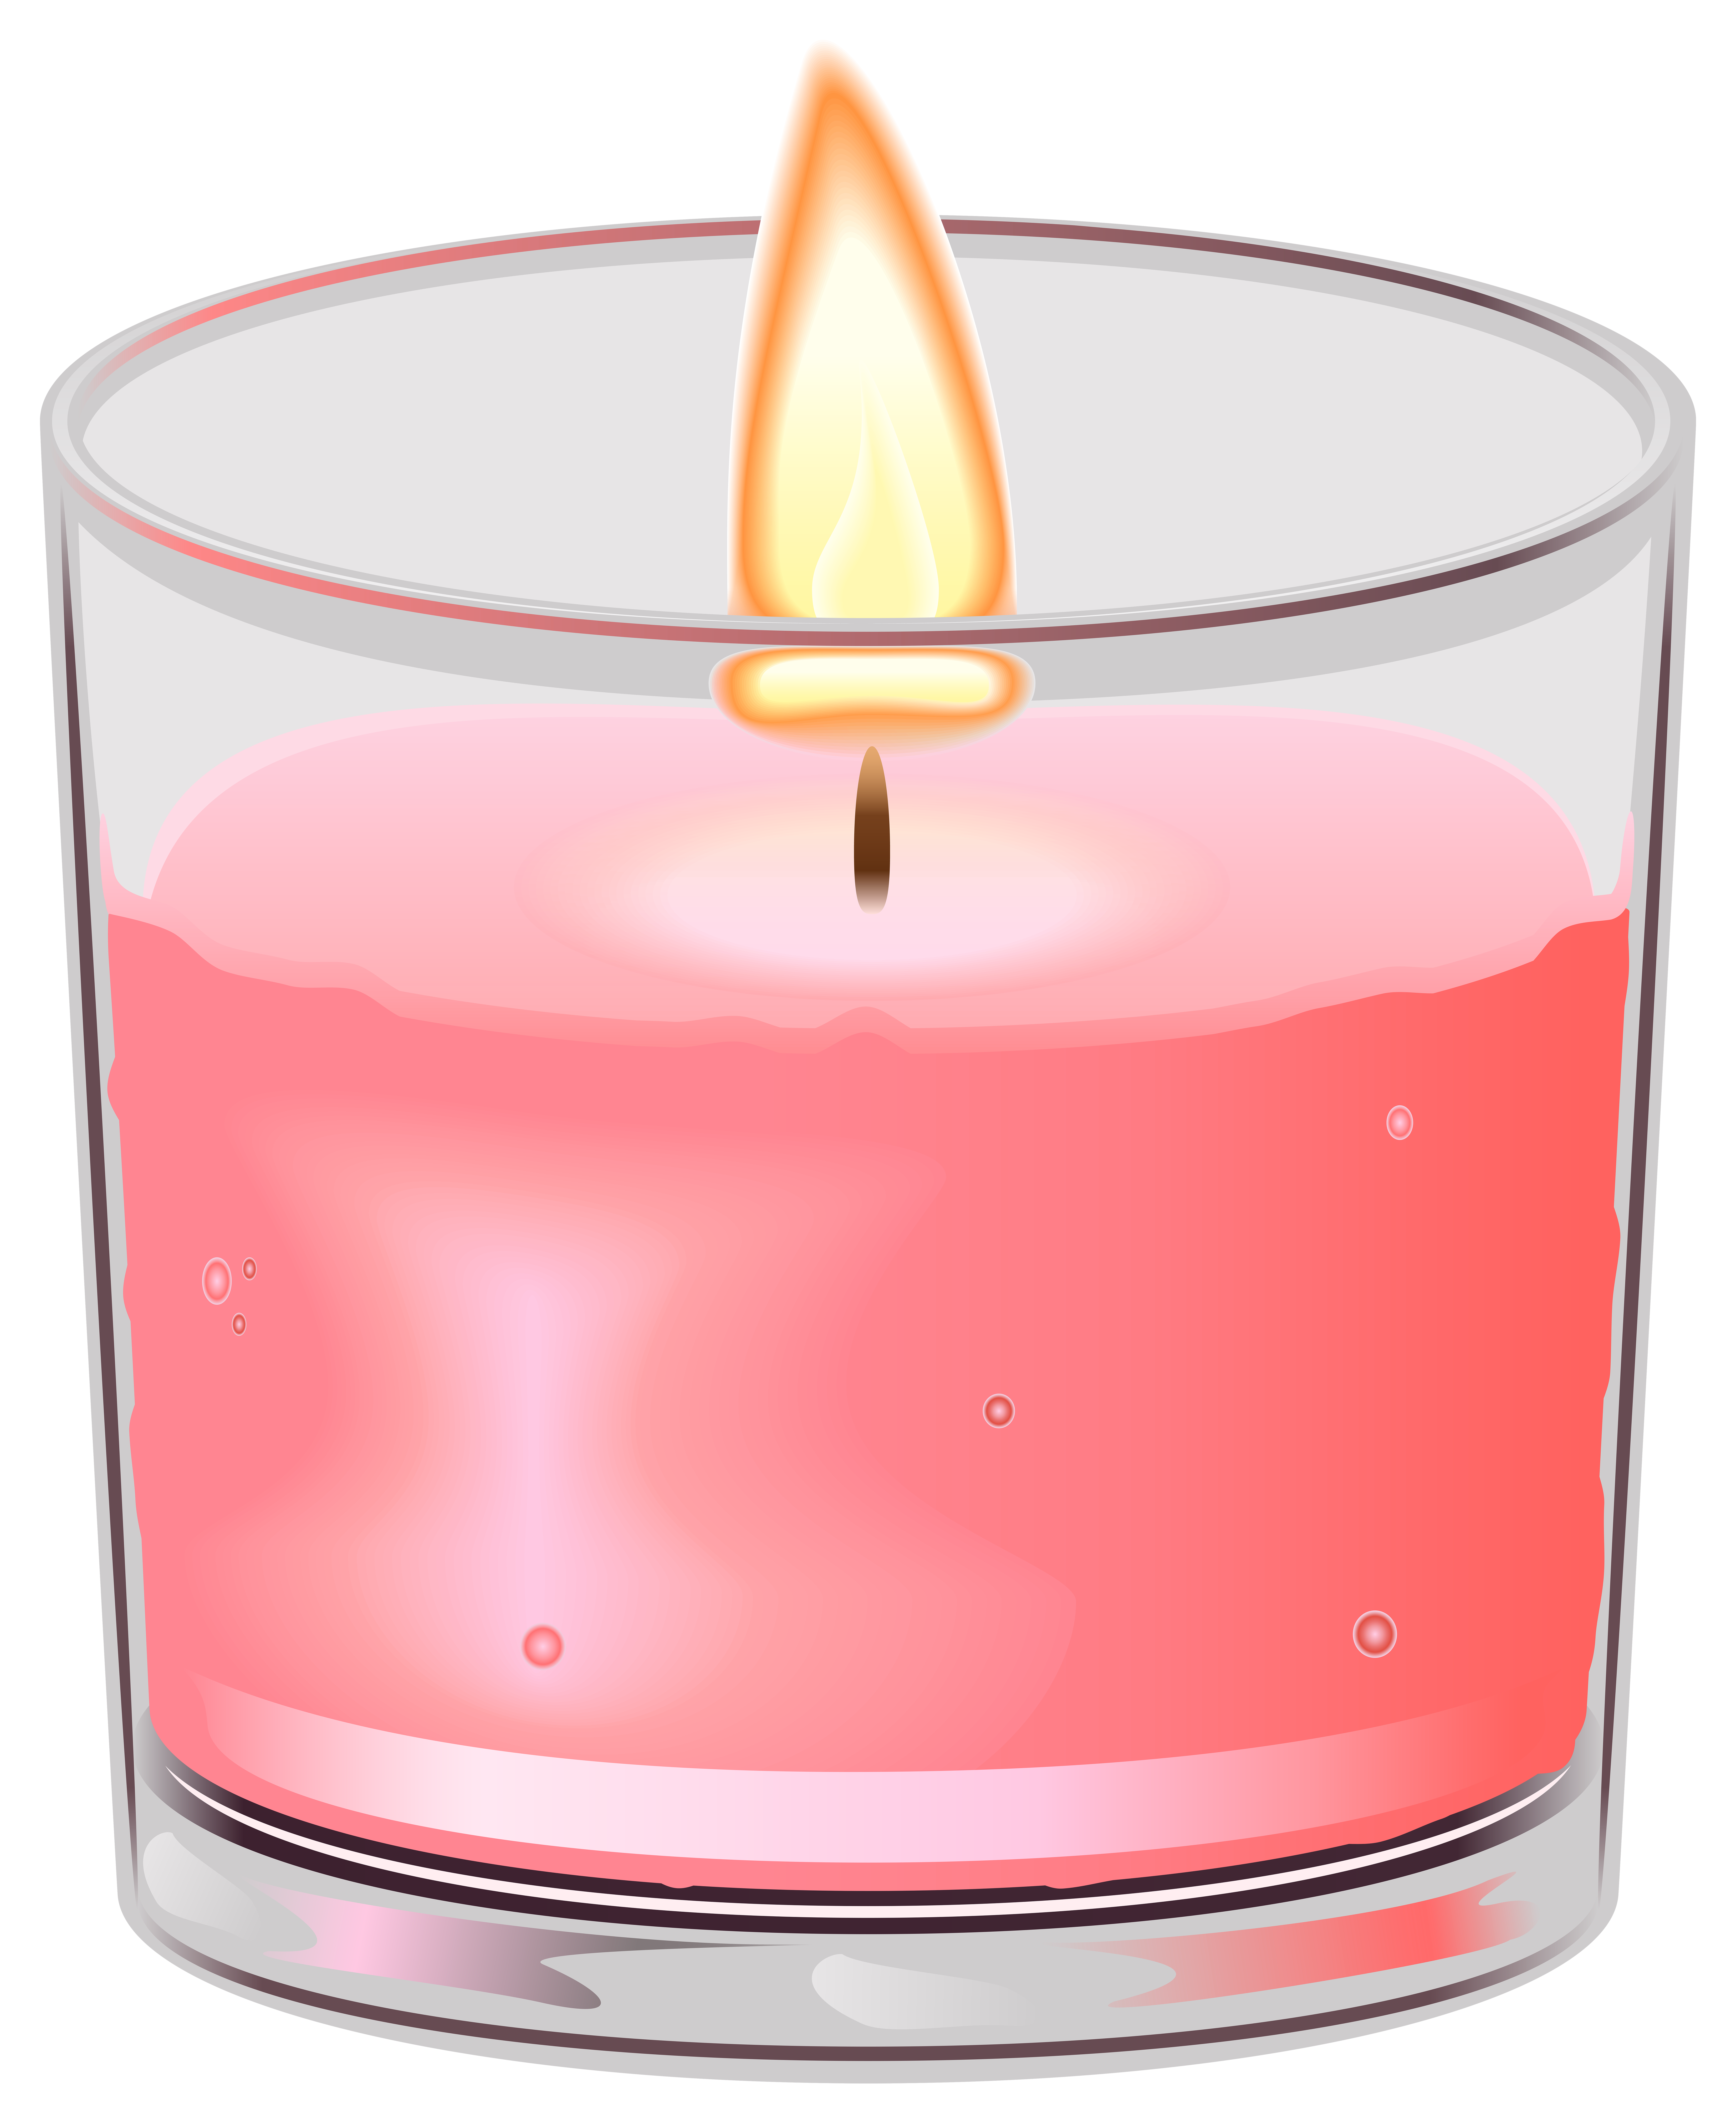 Candles pictures clipart clip freeuse stock Candle in Cup PNG Clip Art - Best WEB Clipart clip freeuse stock